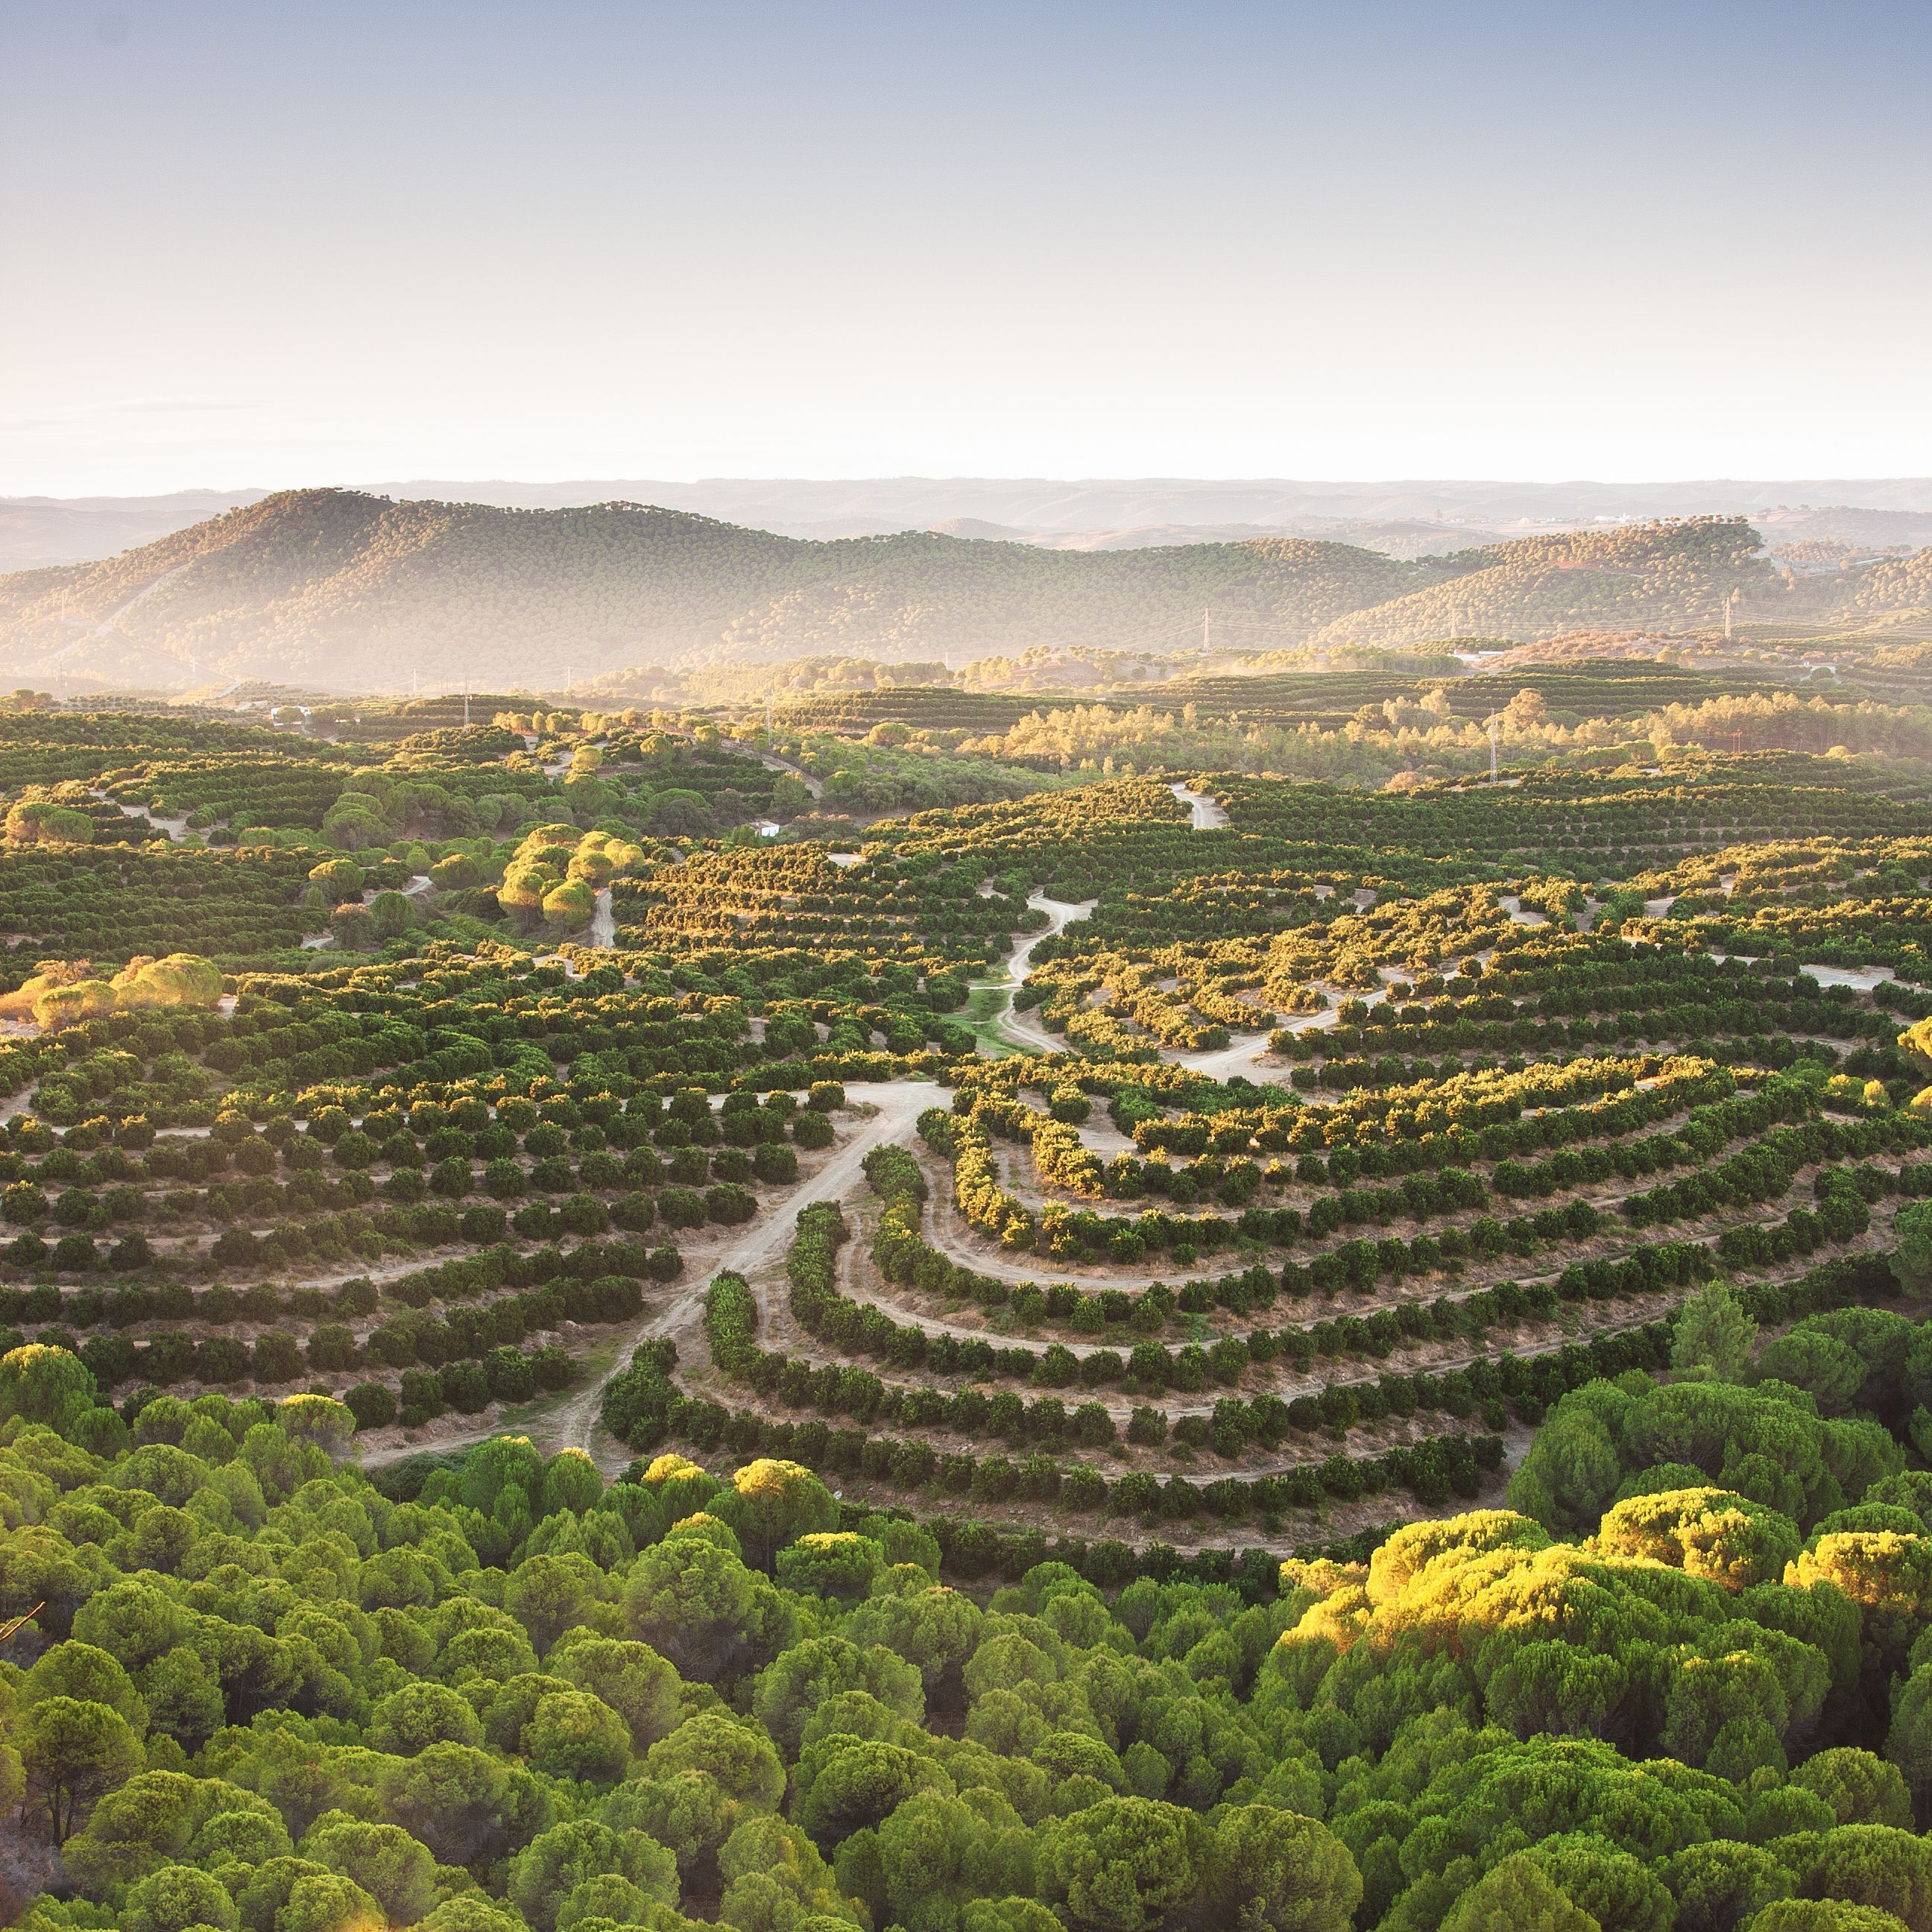 The morning sun sets this grove of orange trees aglow in Nerva, Andalucía, Spain. Spain produces the most citrus in all of Europe.